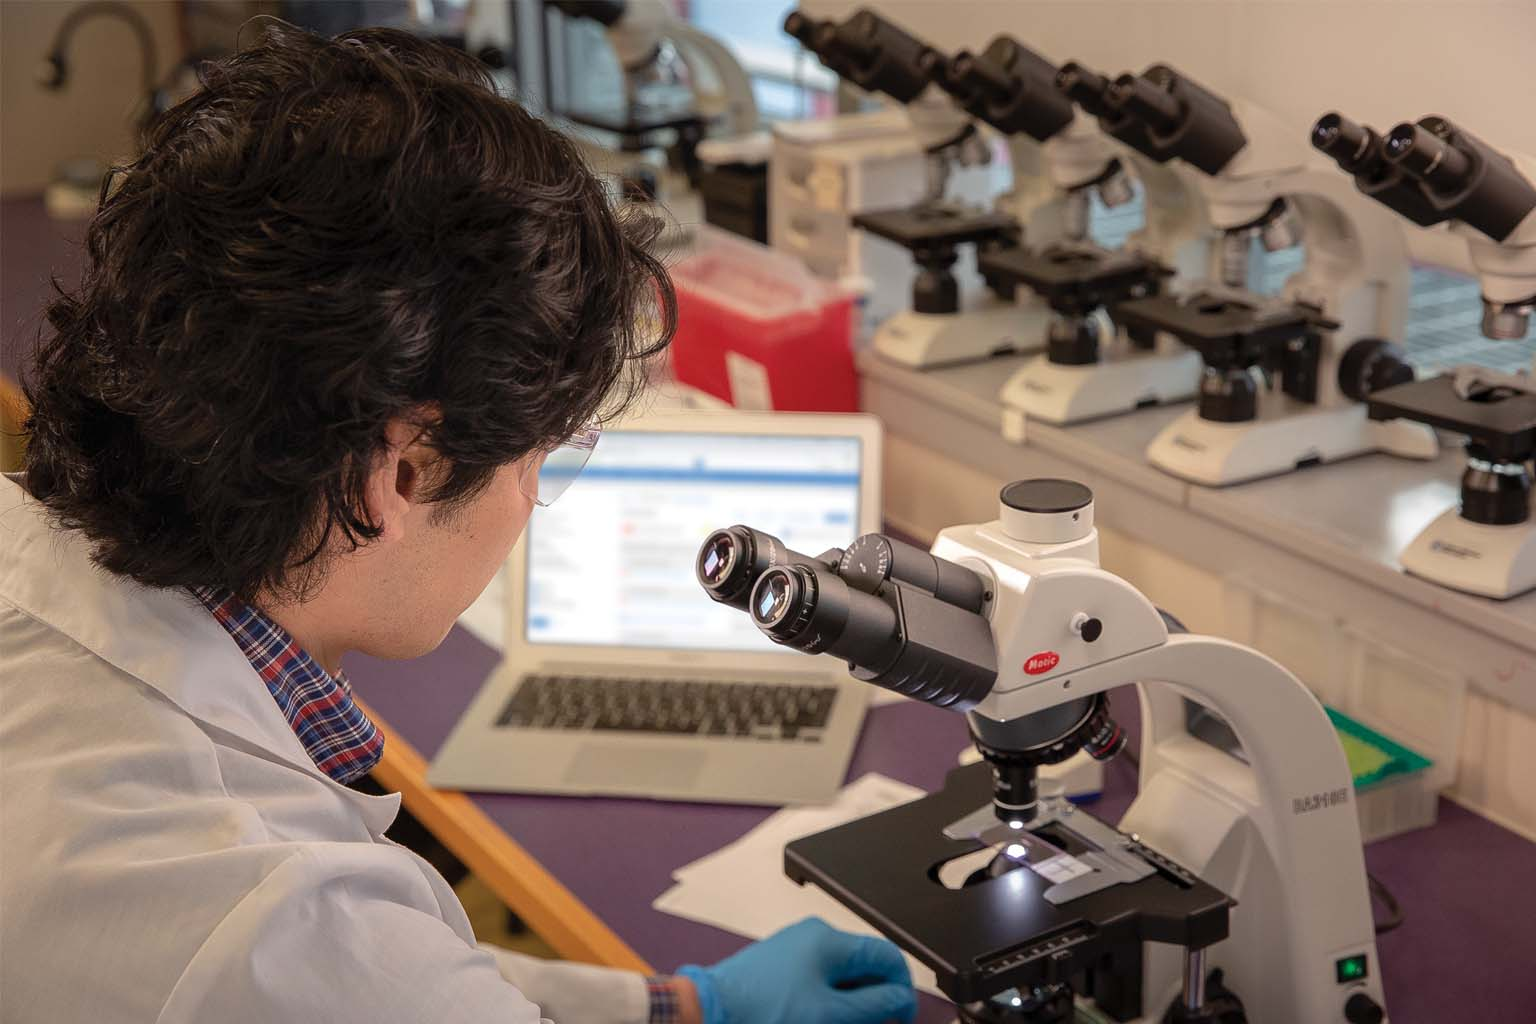 technician in lab with microscope and laptop